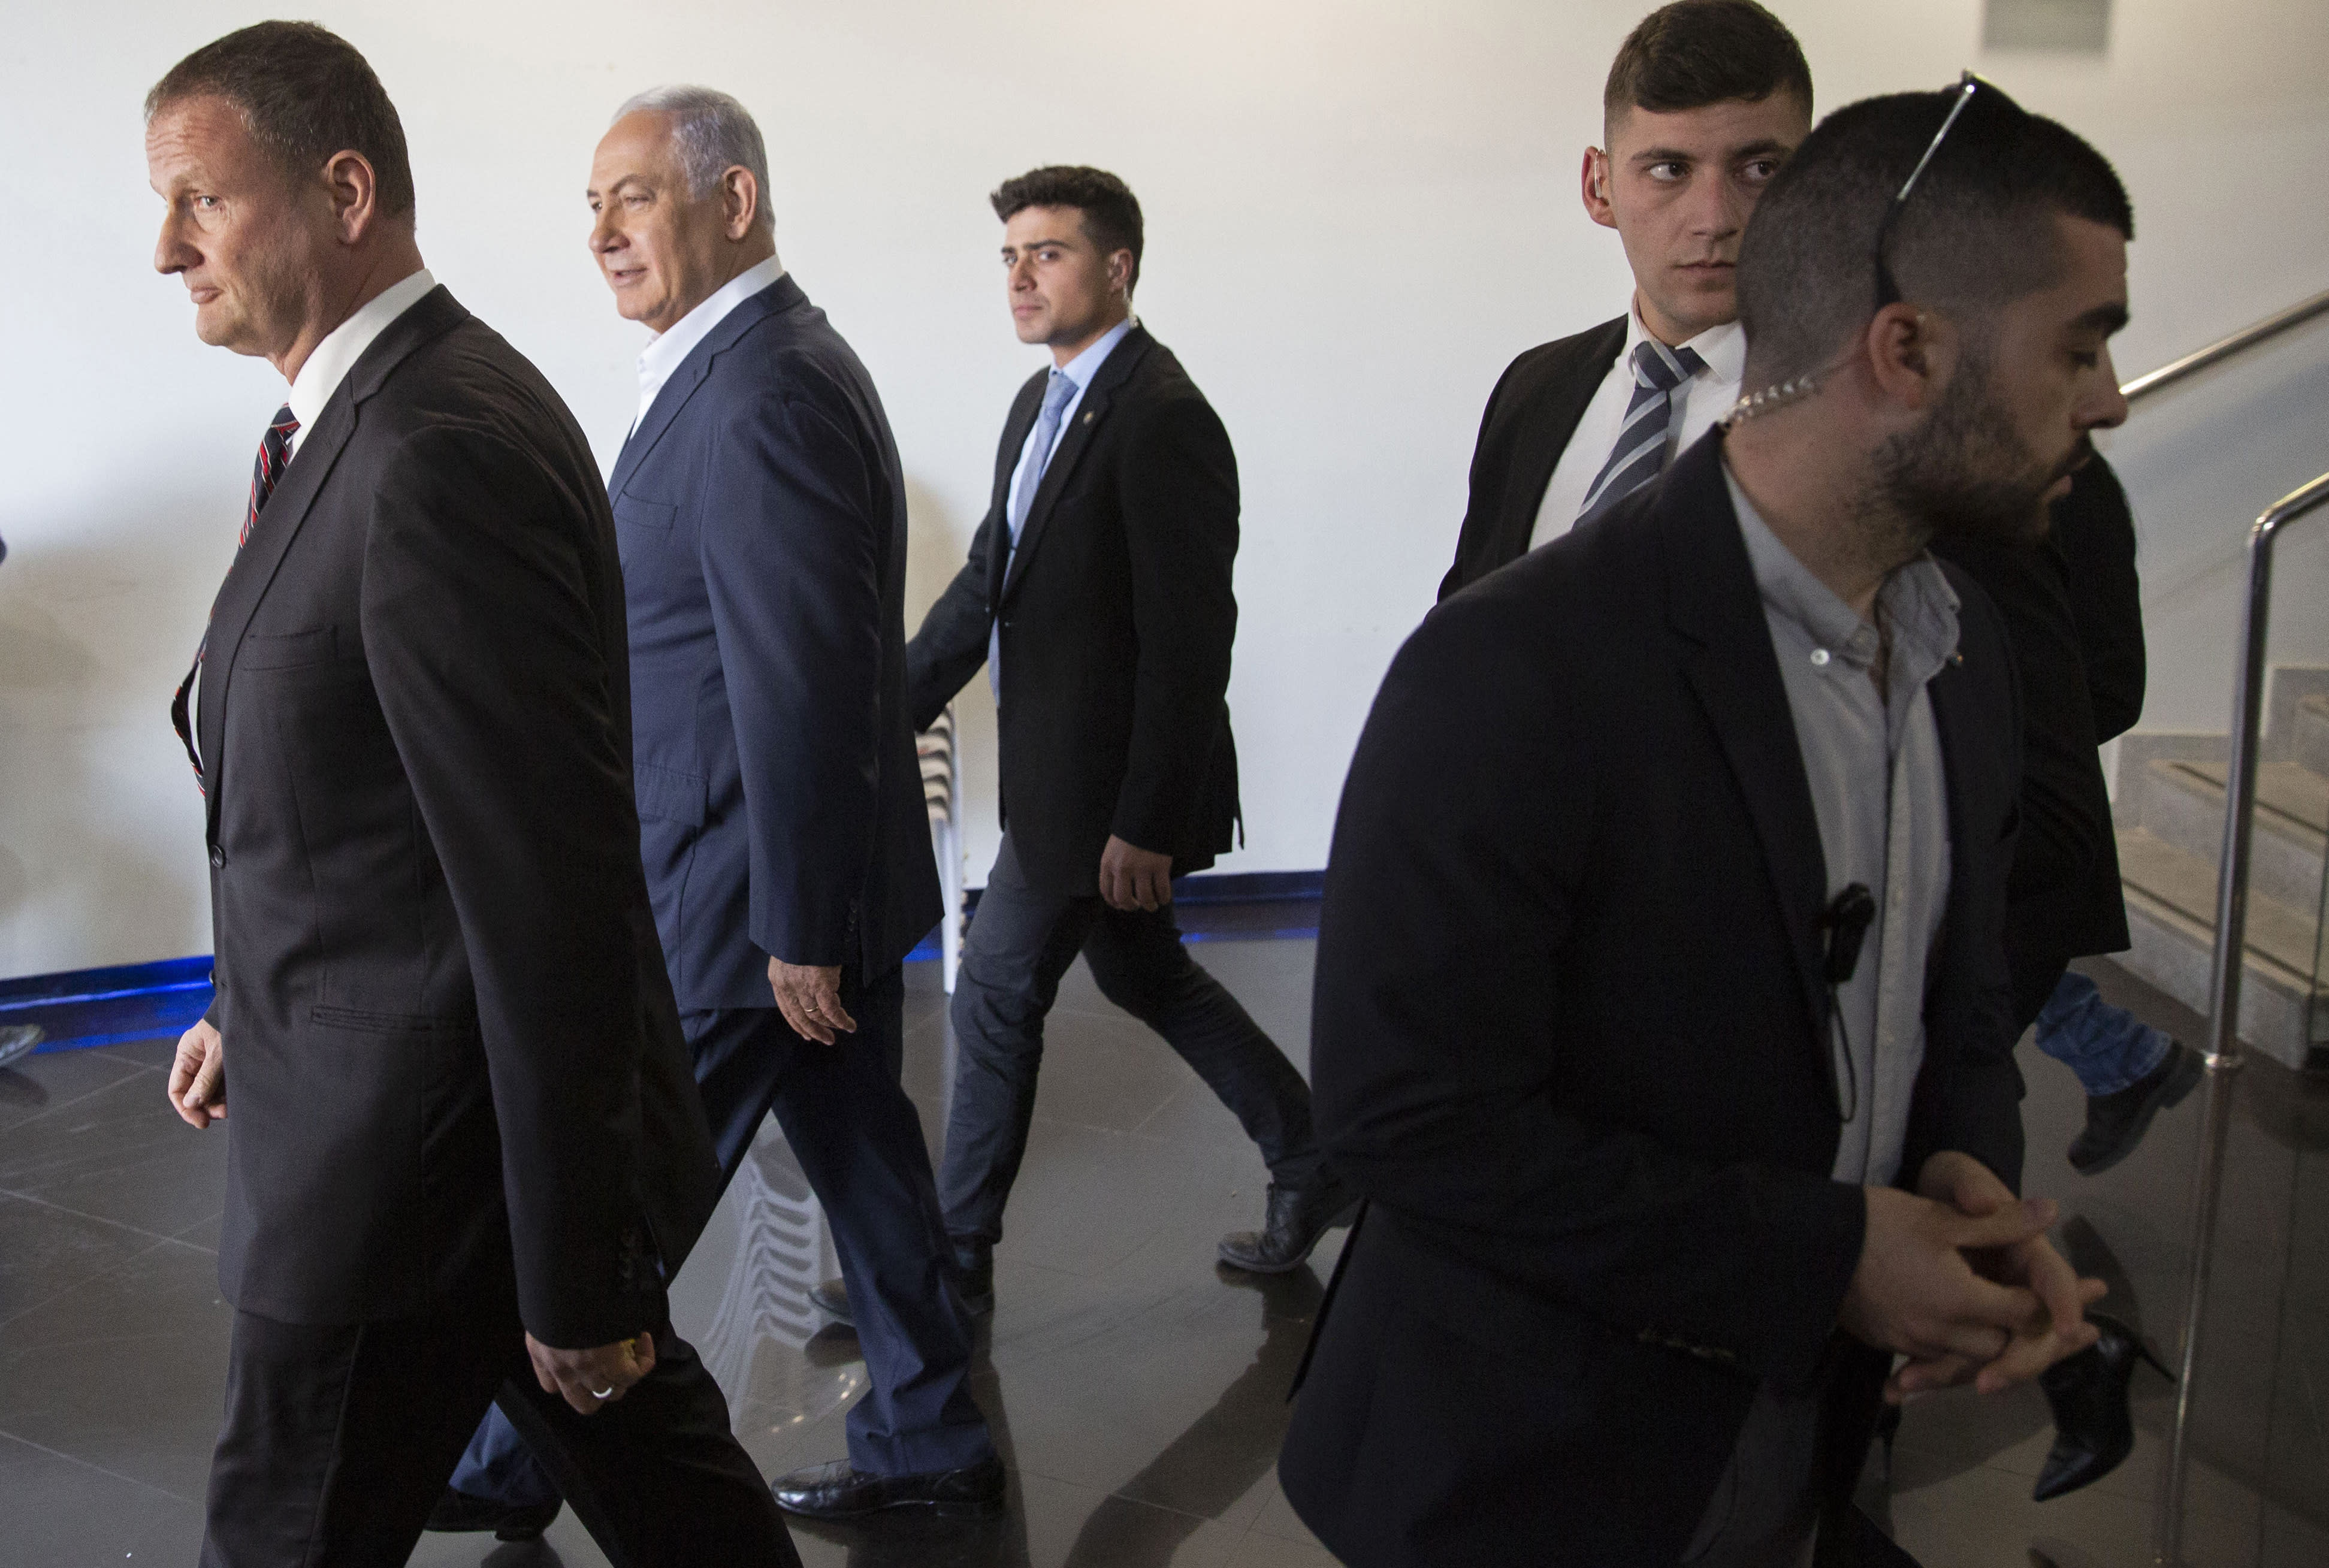 Israeli Prime Minister Benjamin Netanyahu visits the Israel Aerospace Industries (IAI) MLM Division plant in Be'er Ya'akov, Israel, Tuesday, Jan. 22, 2019. Israel said Tuesday that it has successfully tested the Arrow-3 interceptor, the country's advanced missile defense system capable of defending against ballistic missile threats outside the atmosphere. (Tomer Appelbaum/Pool Photo via AP)